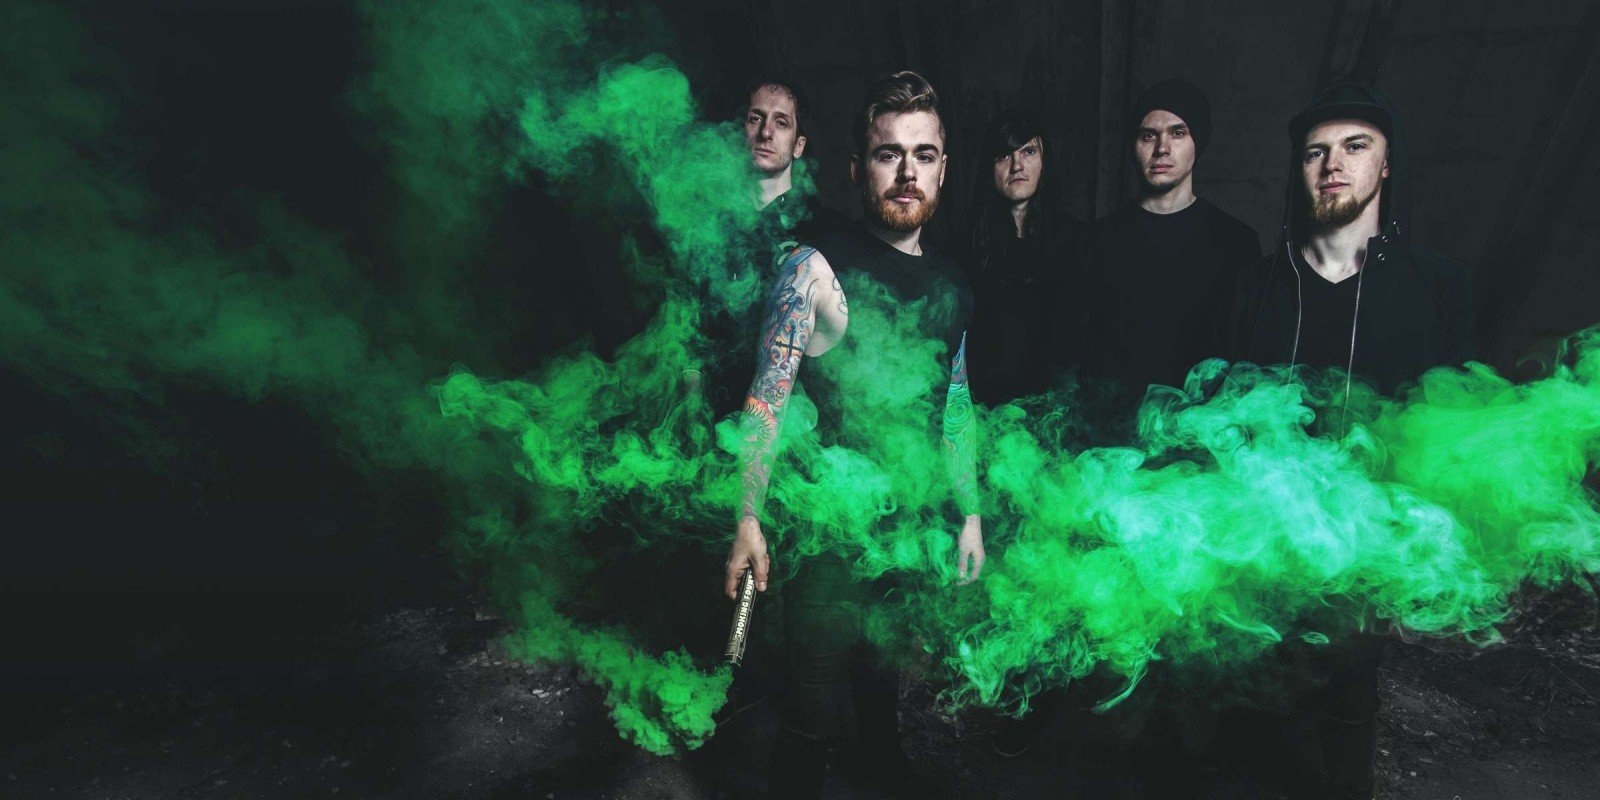 Photoshoot with our band - Chasing The Rise